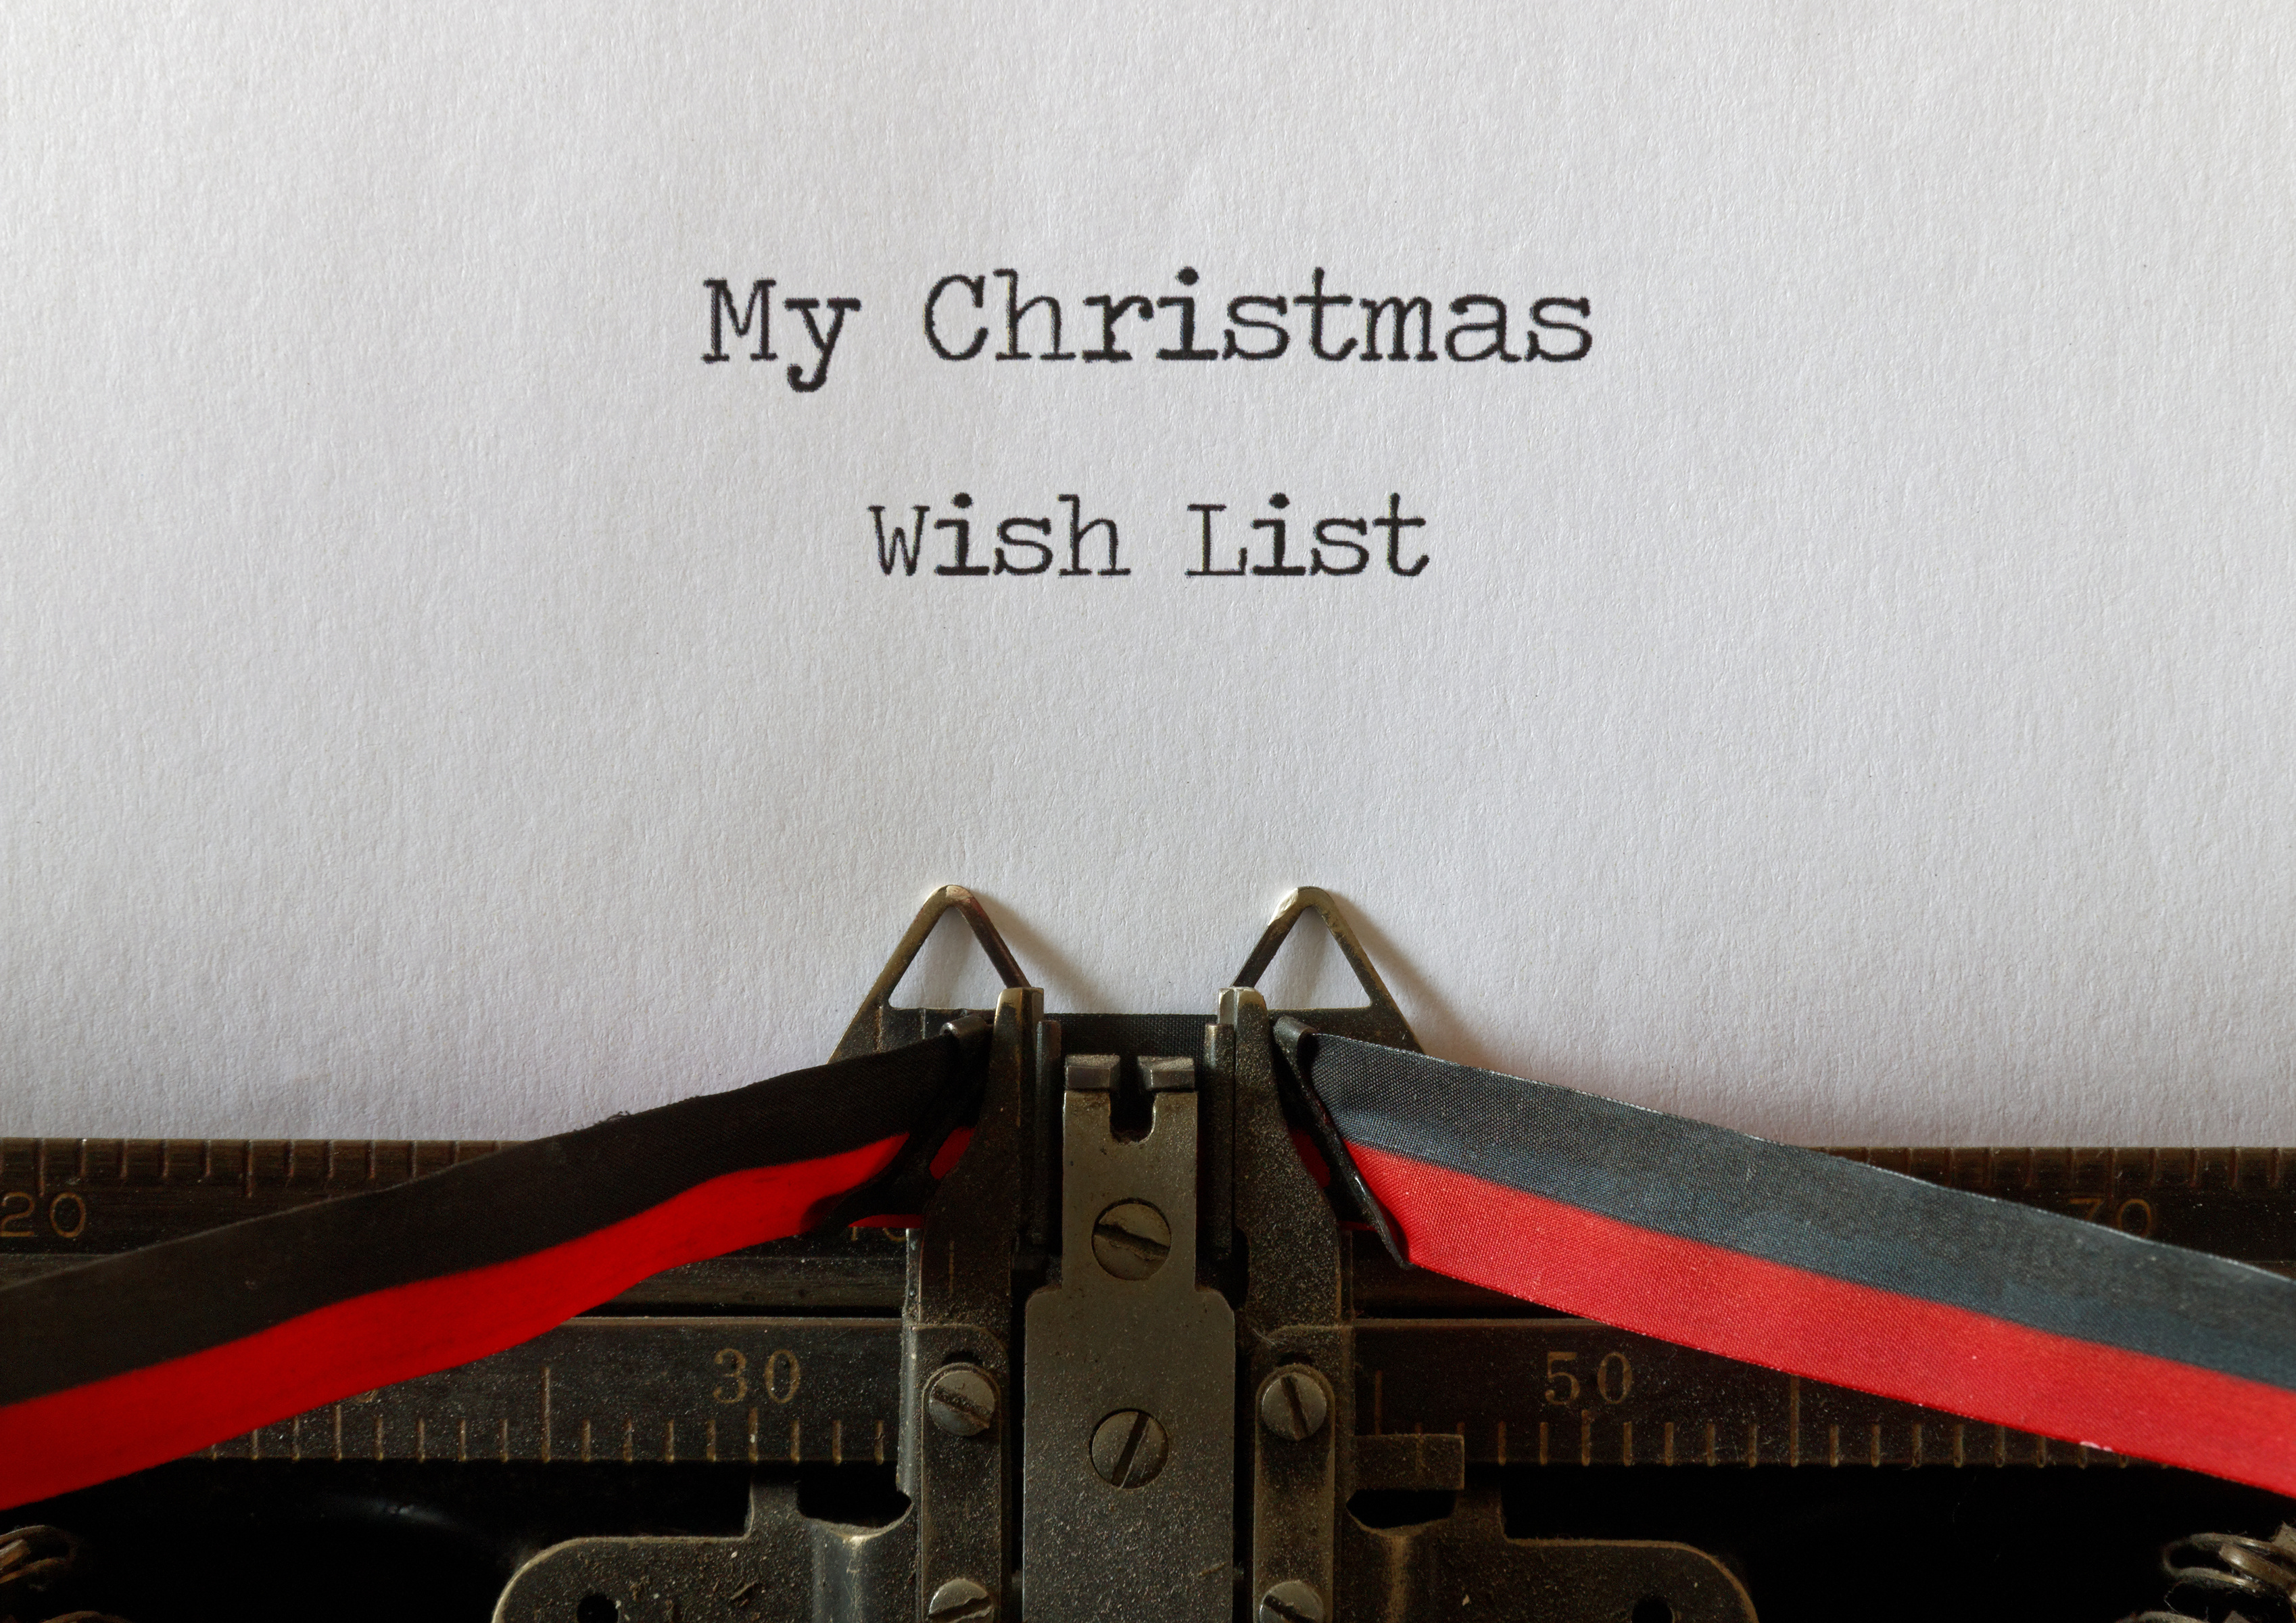 confessions of a bad christian my christmas wish list - My Christmas List